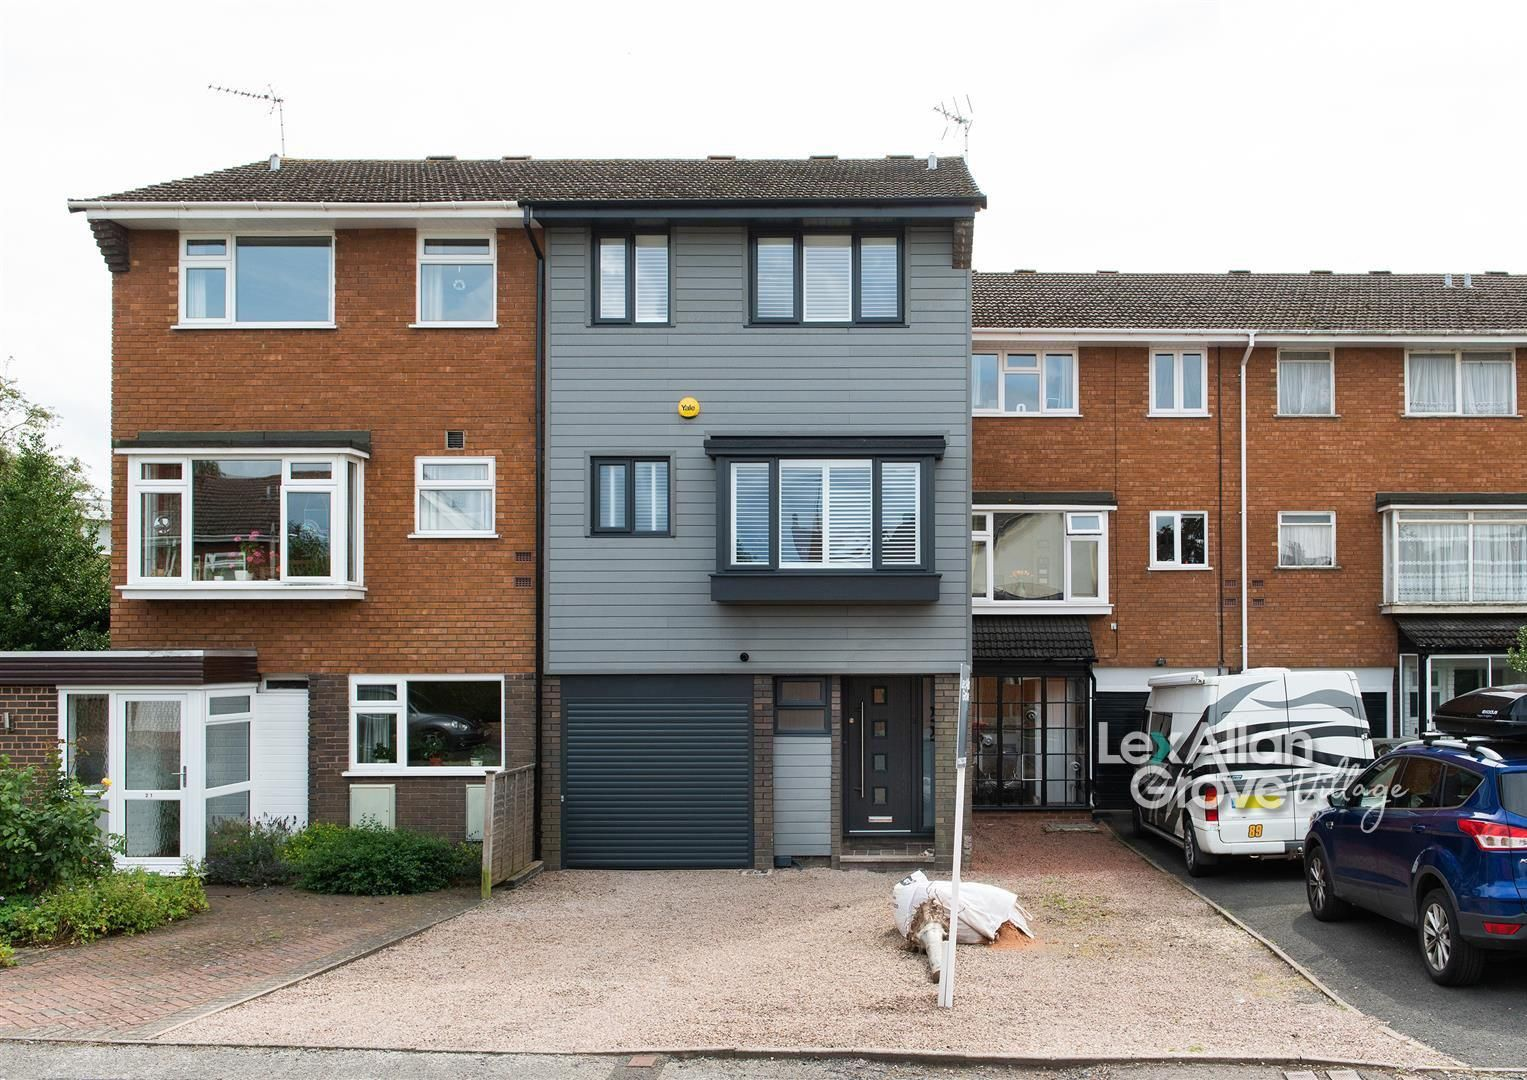 3 bed town-house for sale in Hagley, DY9